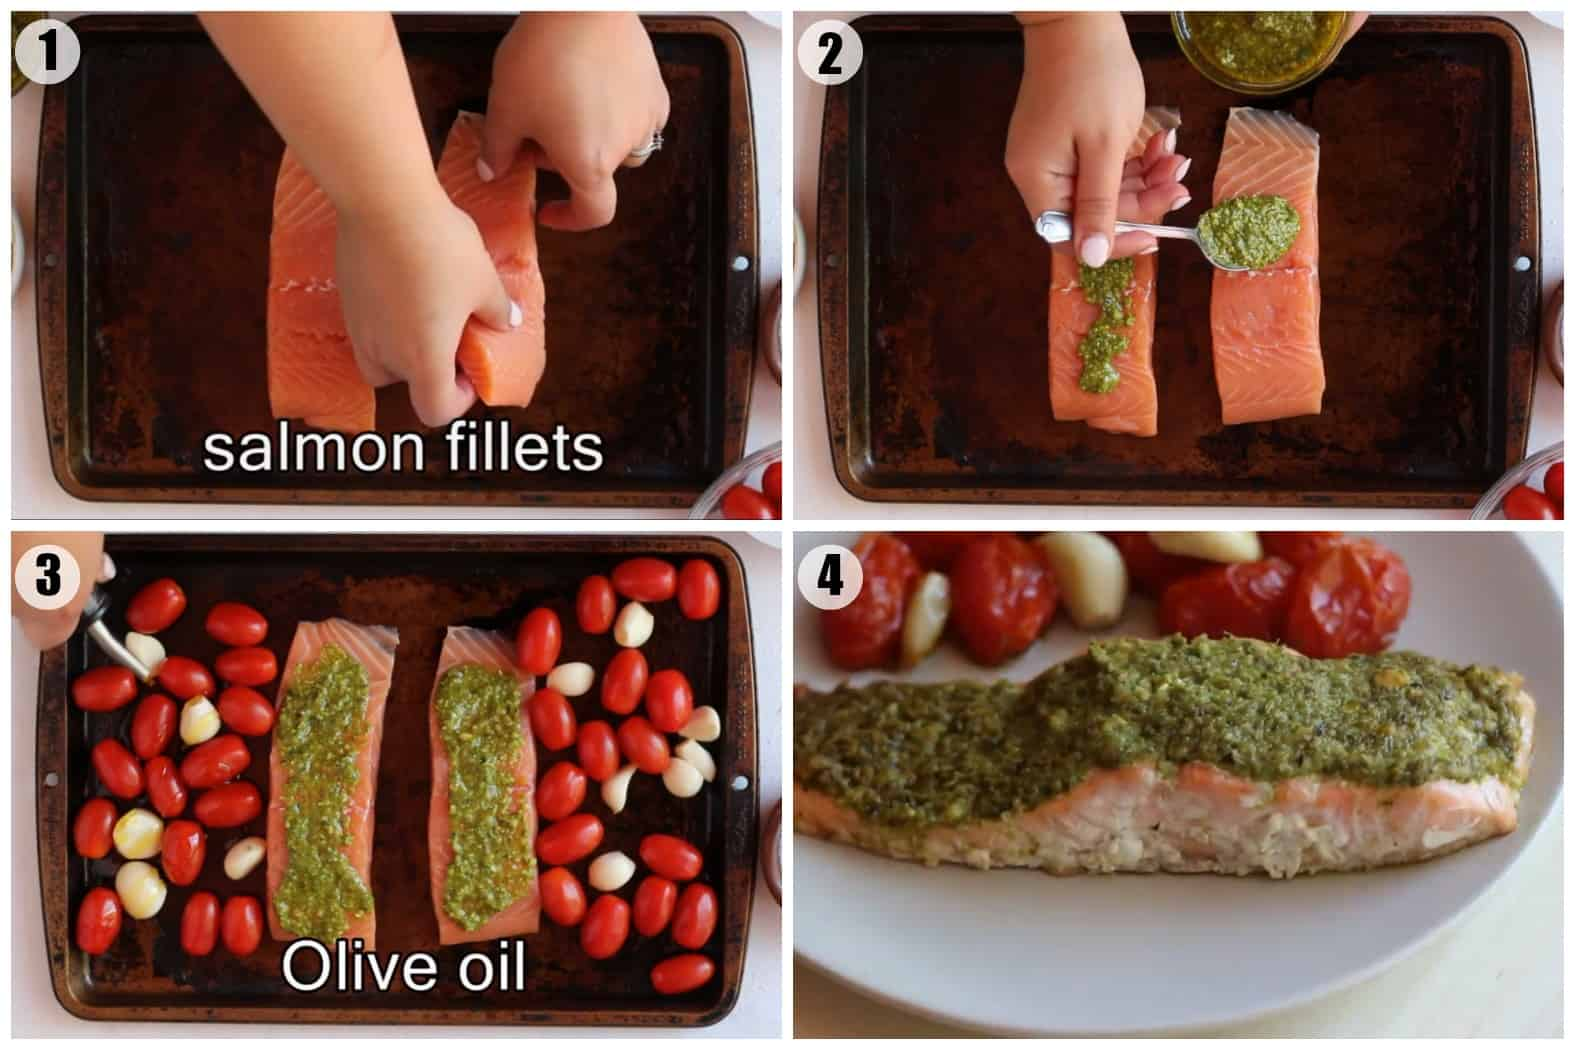 Place the salmon on the baking sheet and top with pesto. Cook with tomatoes and garlic.